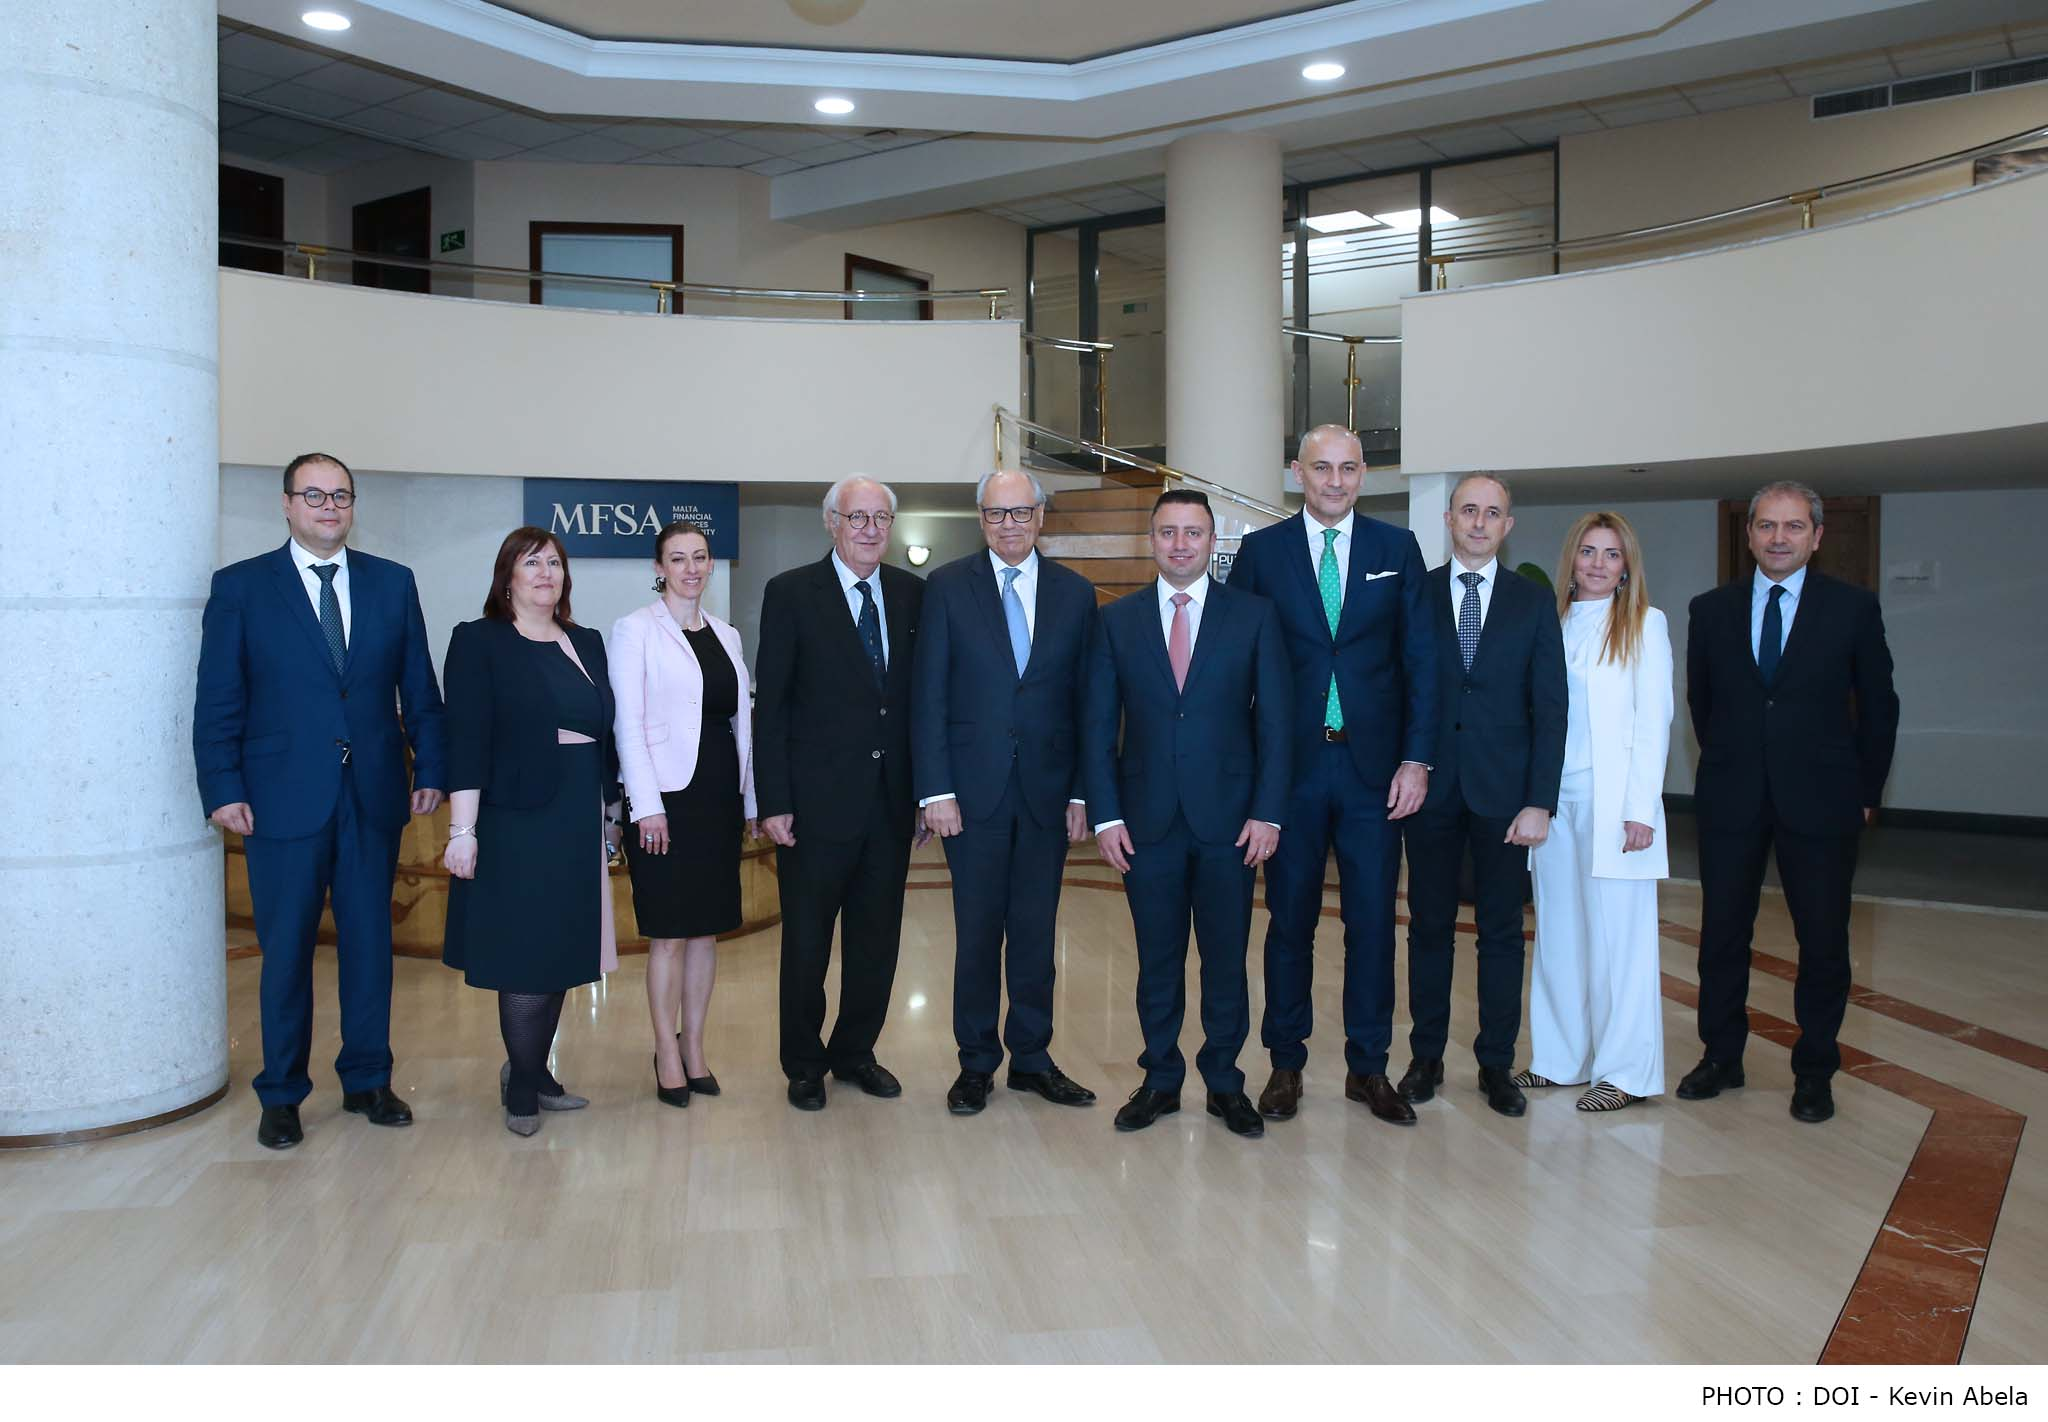 ​Minister for Finance and Financial Services Edward Scicluna and Parliamentary Secretary for Financial Services and Digital Economy Clayton Bartolo paid a courtesy visit to the Malta Financial Services Authority (MFSA) on 4th March 2019